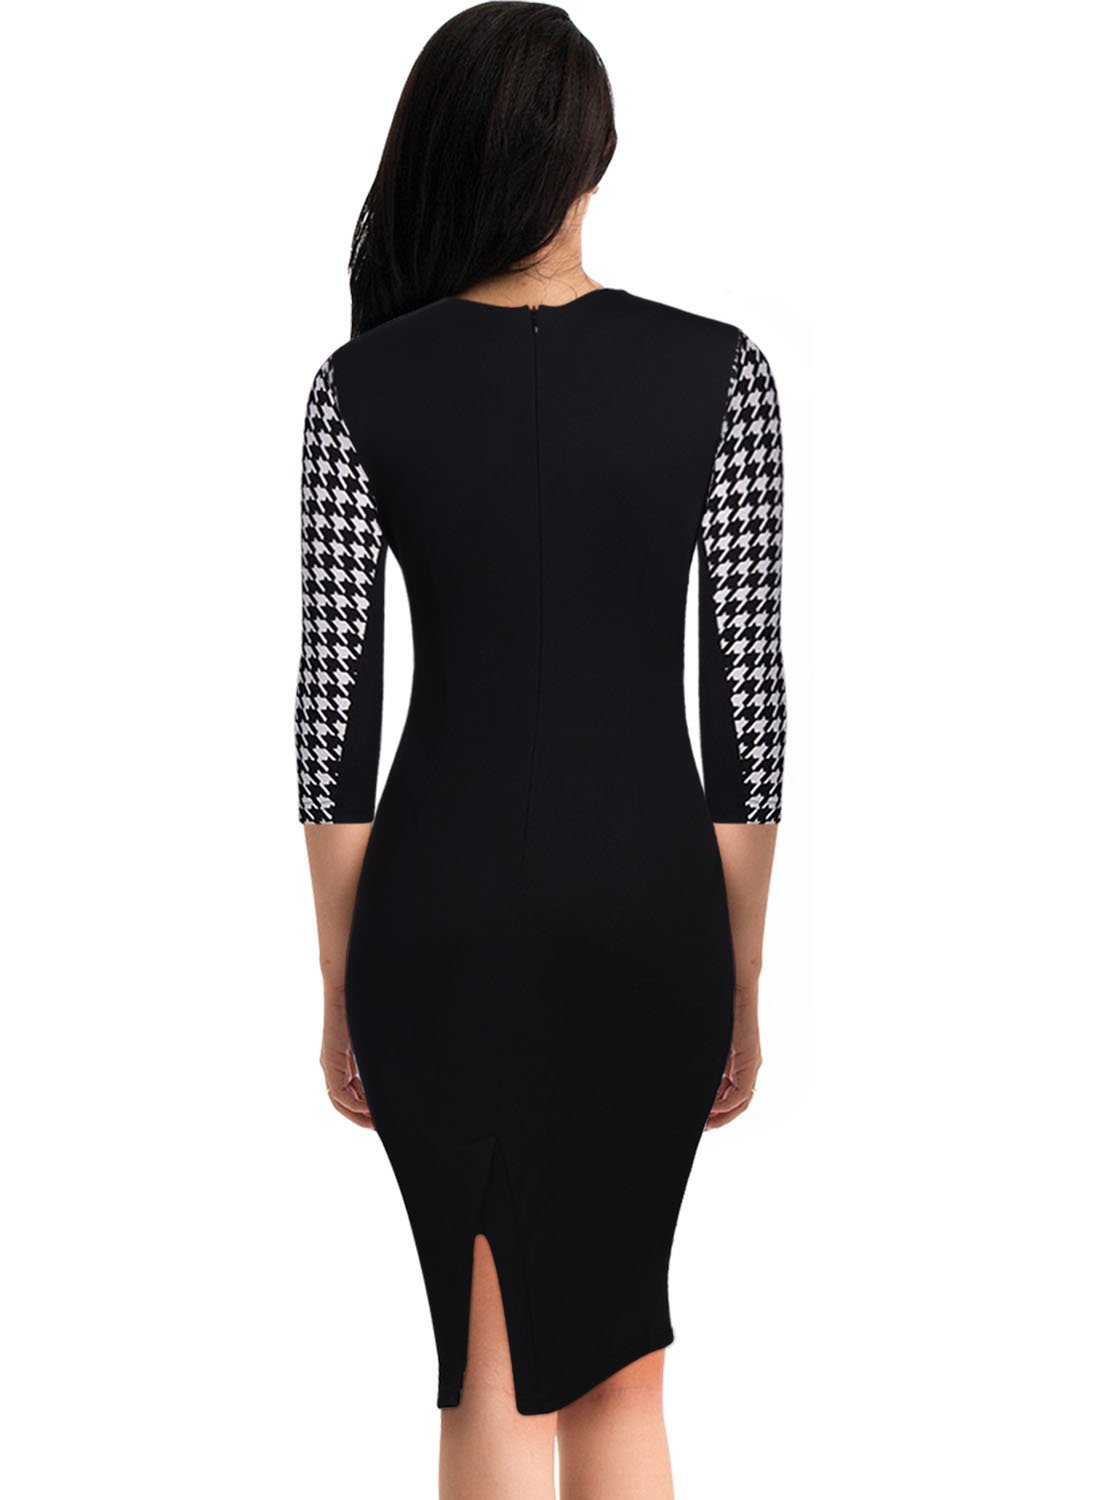 Miusol Women Formal Houndstooth-Print Optical Illusion 2/3 Sleeve Business Dress Black Large by Miusol (Image #2)